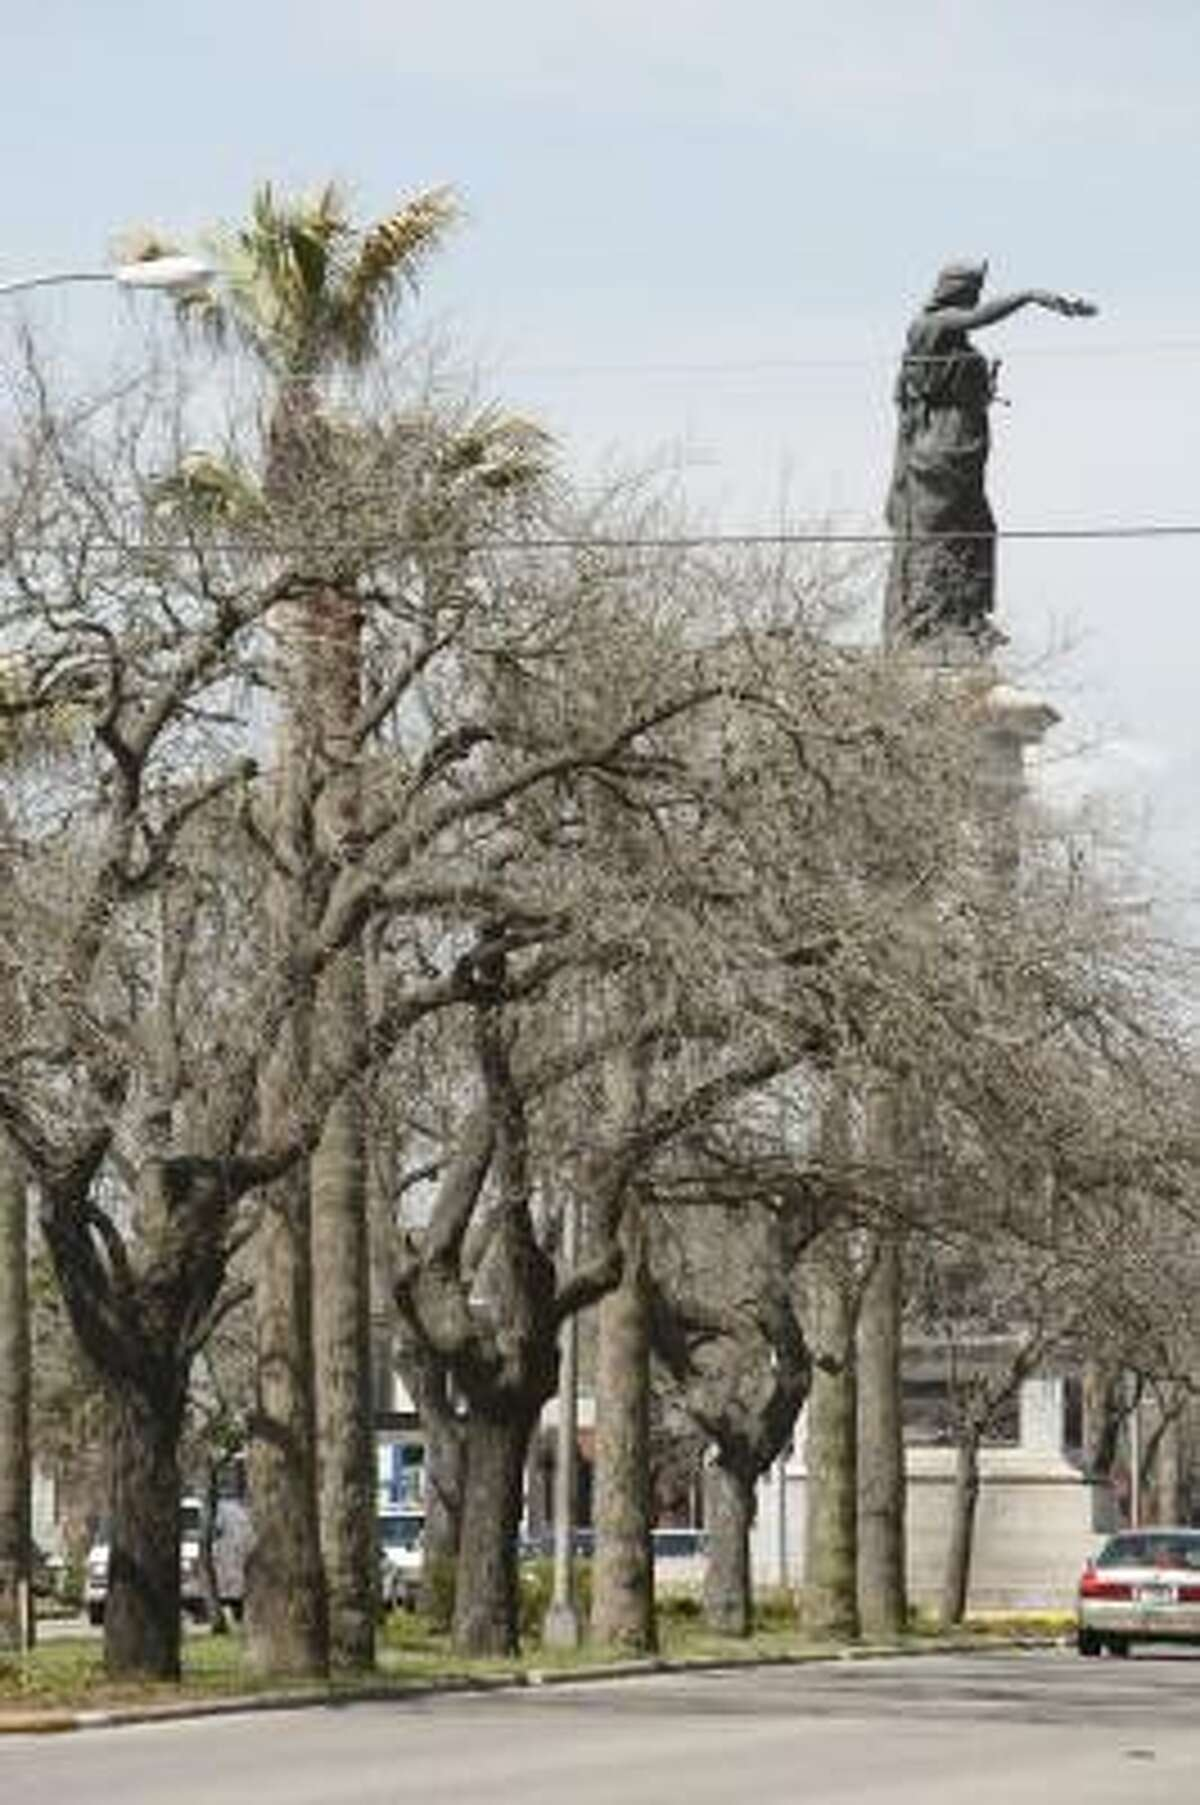 Several oak trees along Broadway were killed by Hurricane Ike's storm surge, including these photographed in April. The island lost as much as 80 percent of its tree canopy as a result of the Sept. 13 immersion in salty bay water, experts said today.